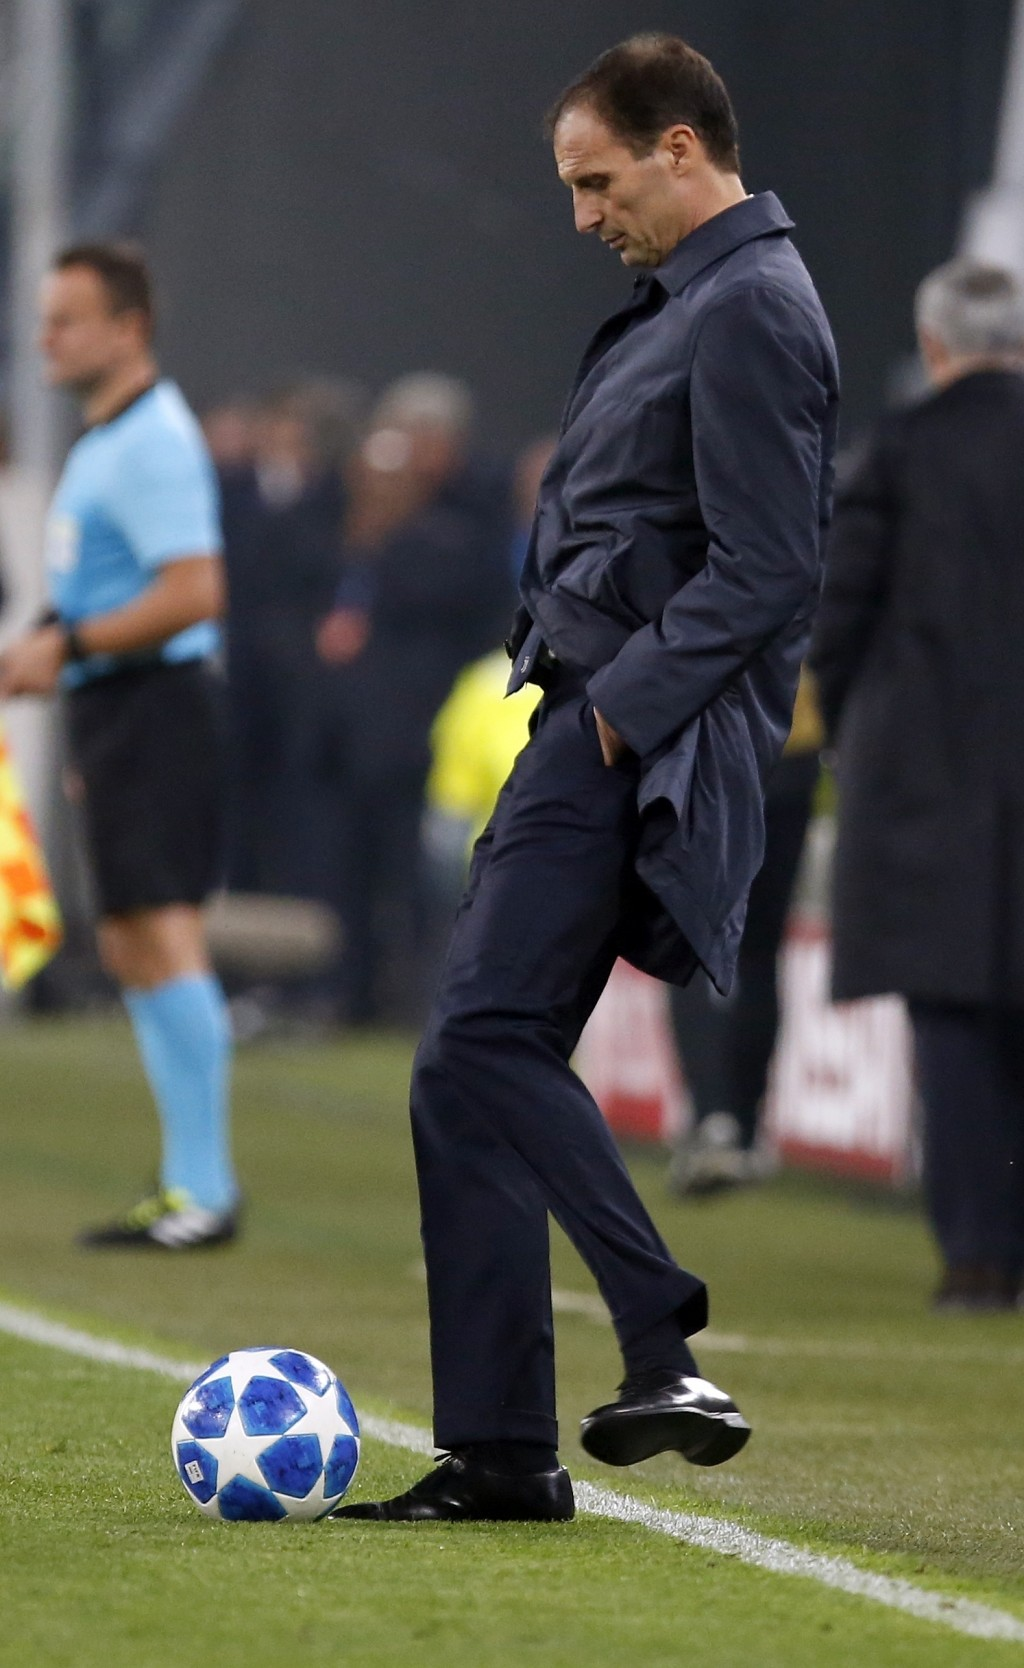 Juventus coach Massimiliano Allegri kicks the ball into the pitch during the Champions League group H soccer match between Juventus and Manchester Uni